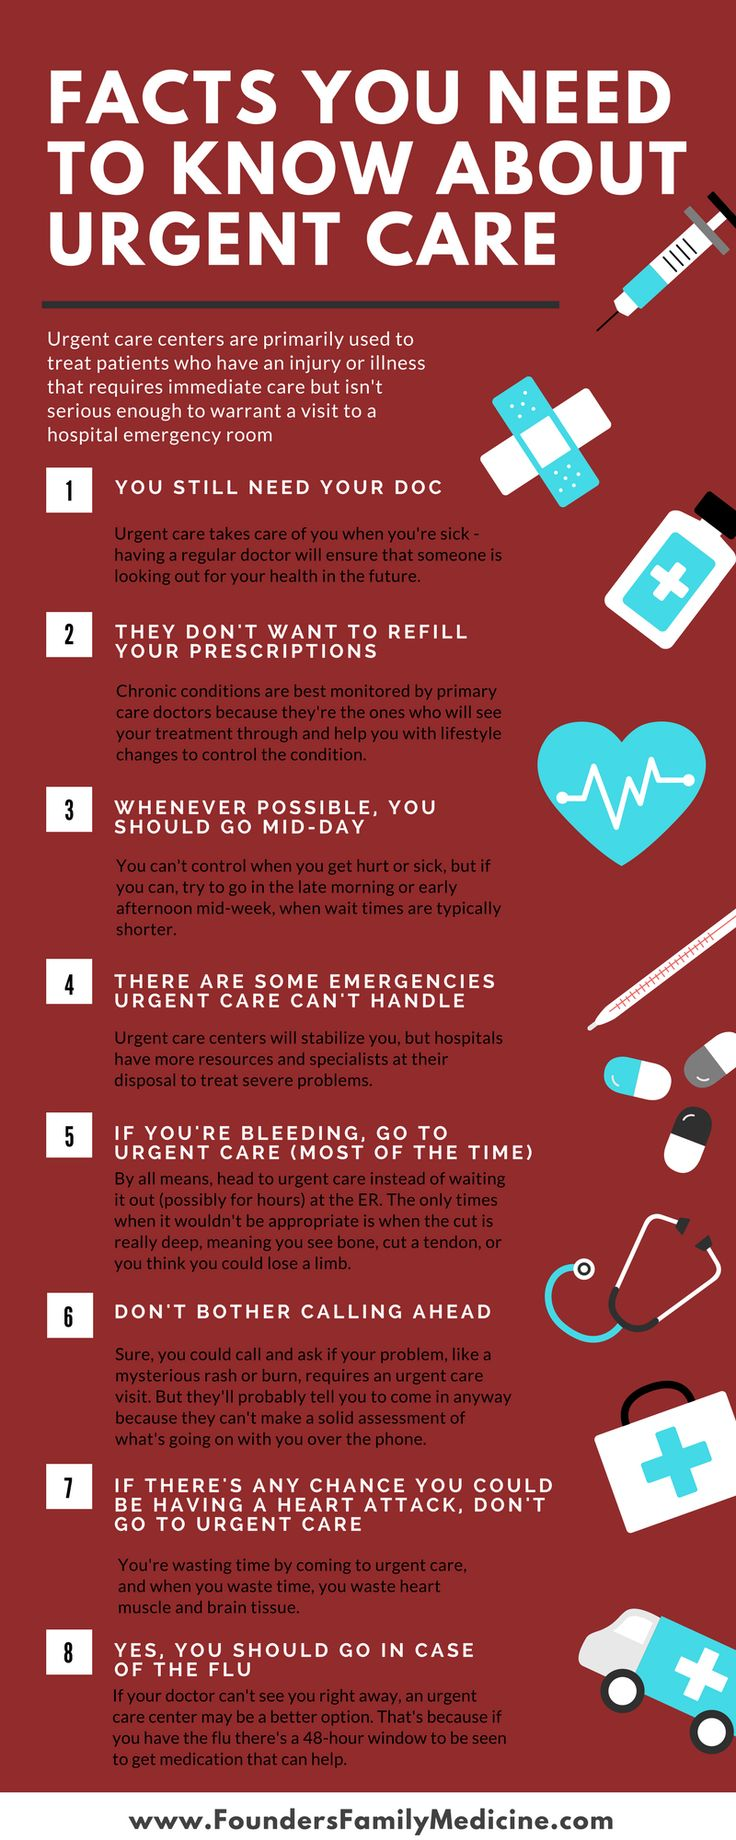 Facts You Need to Know About Urgent Care Infographic We